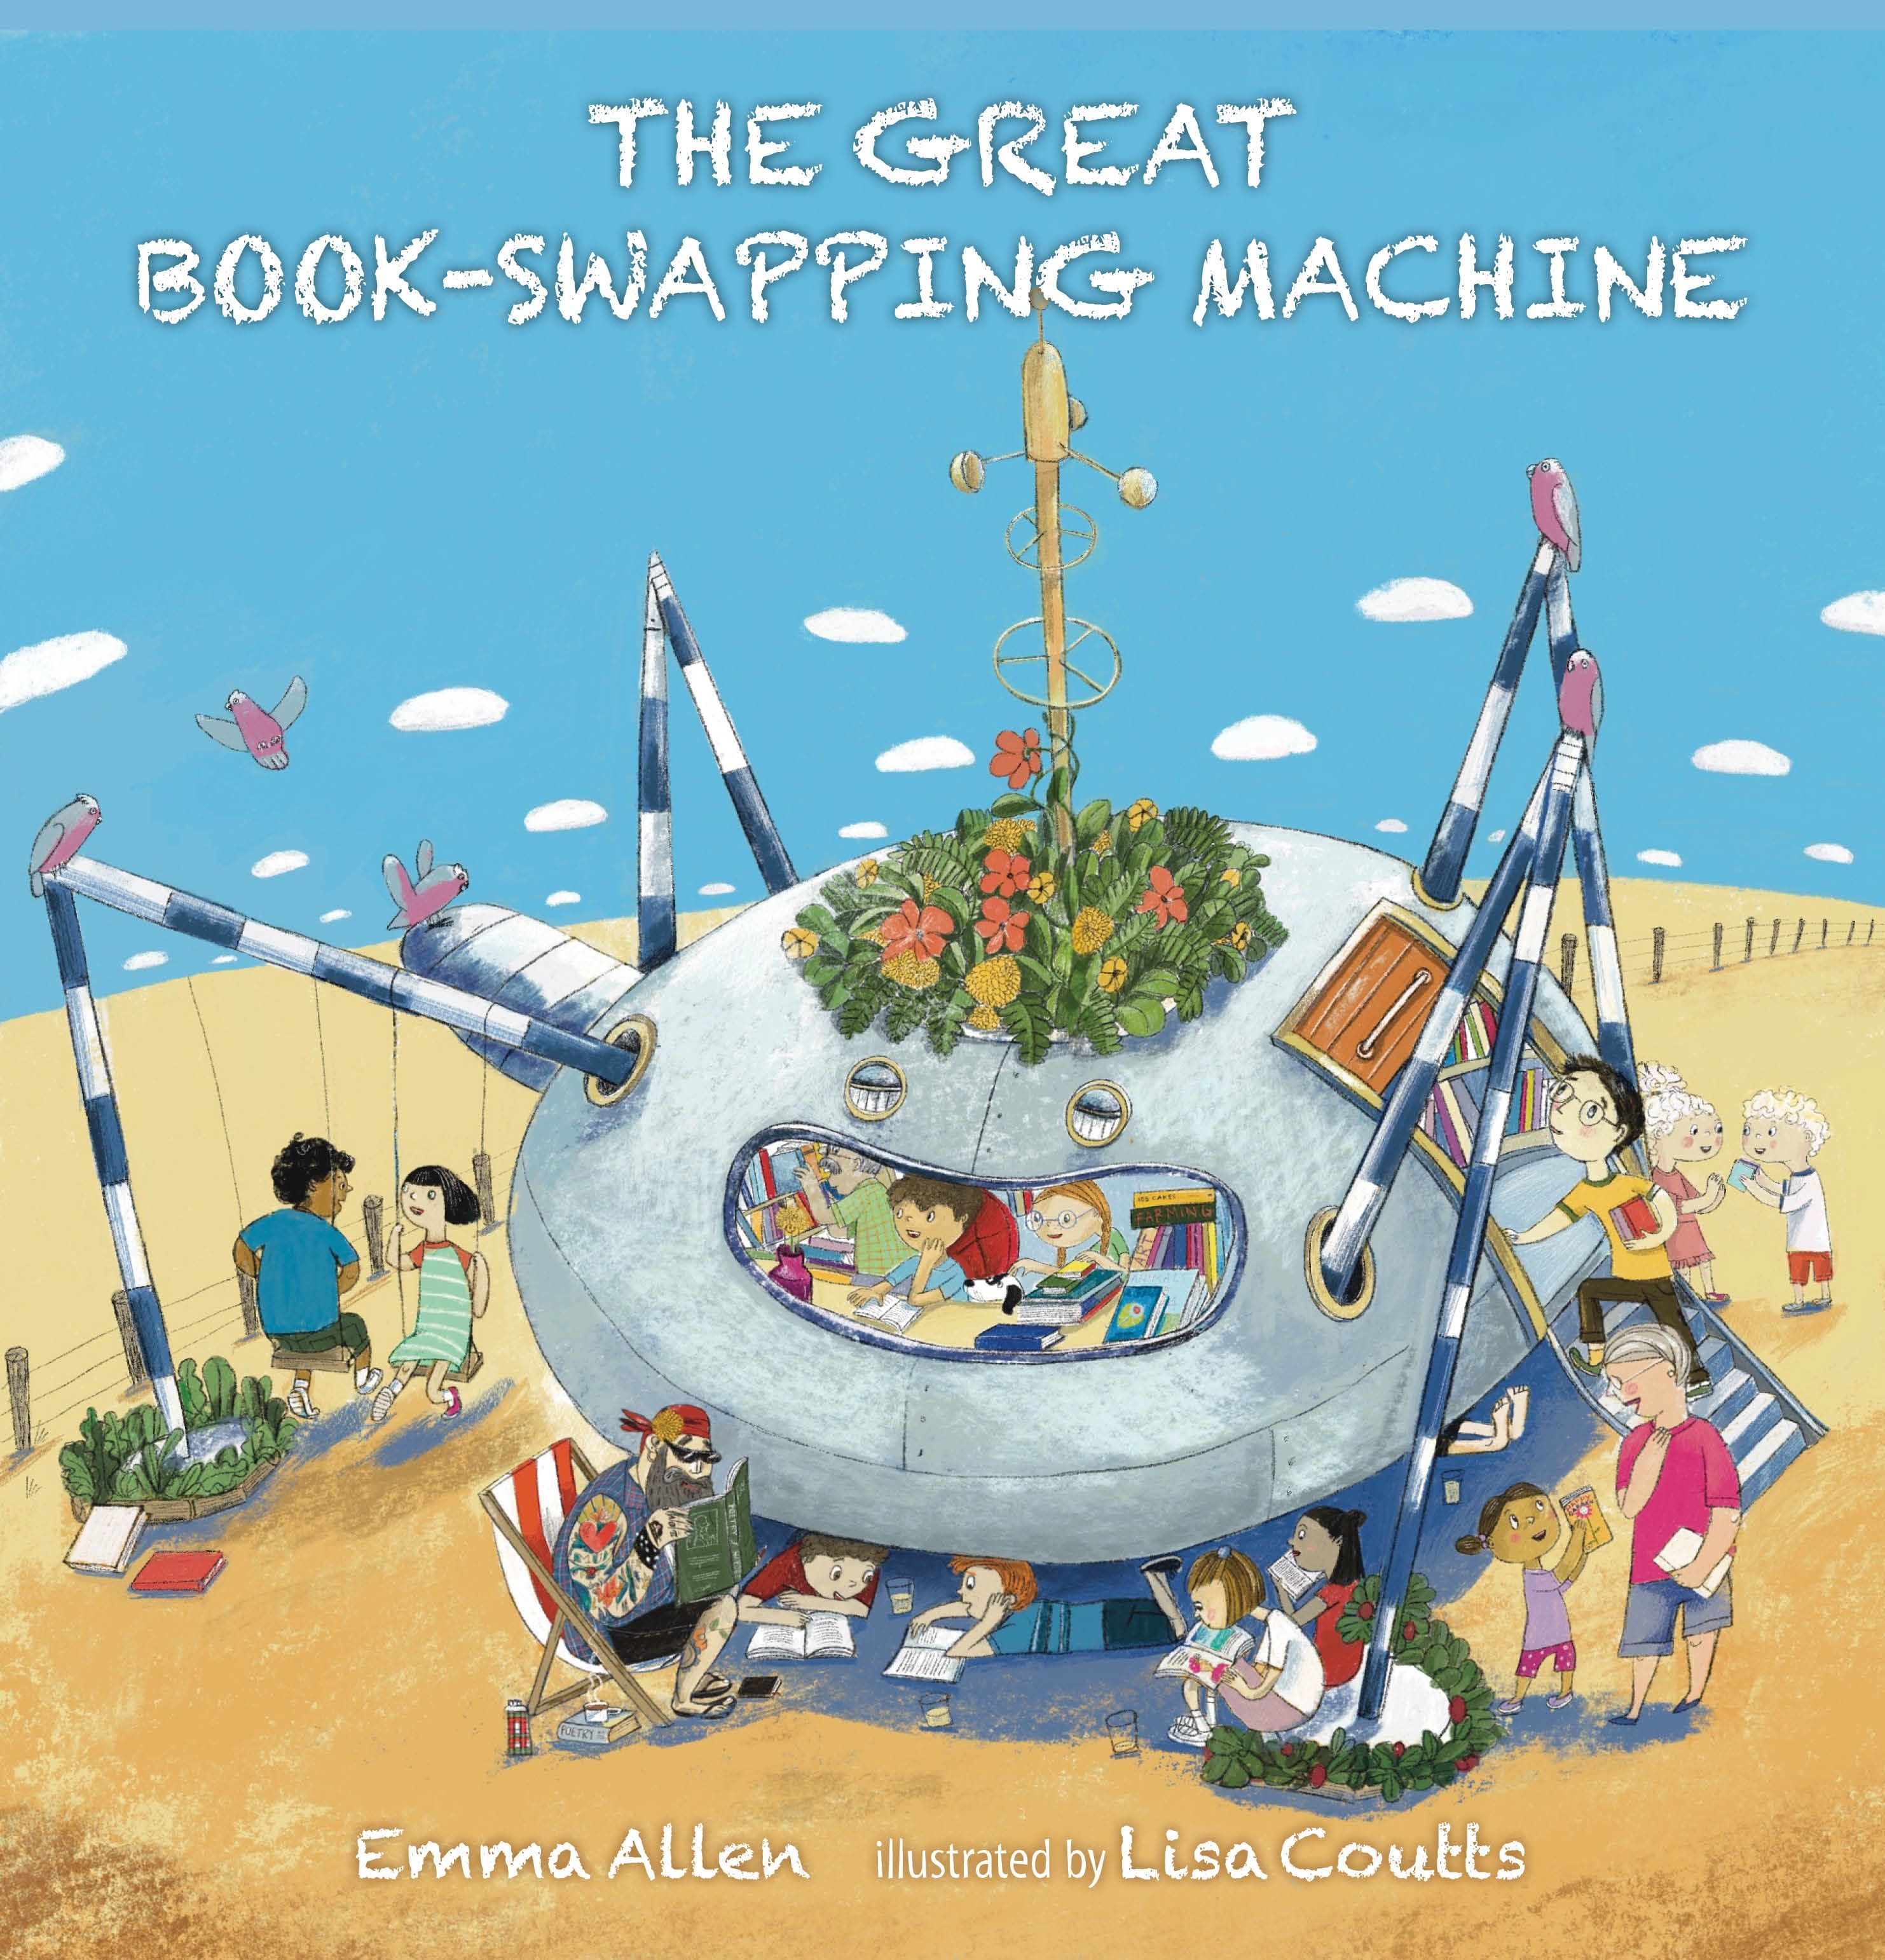 The Great Book-swapping Machine by Emma Allen